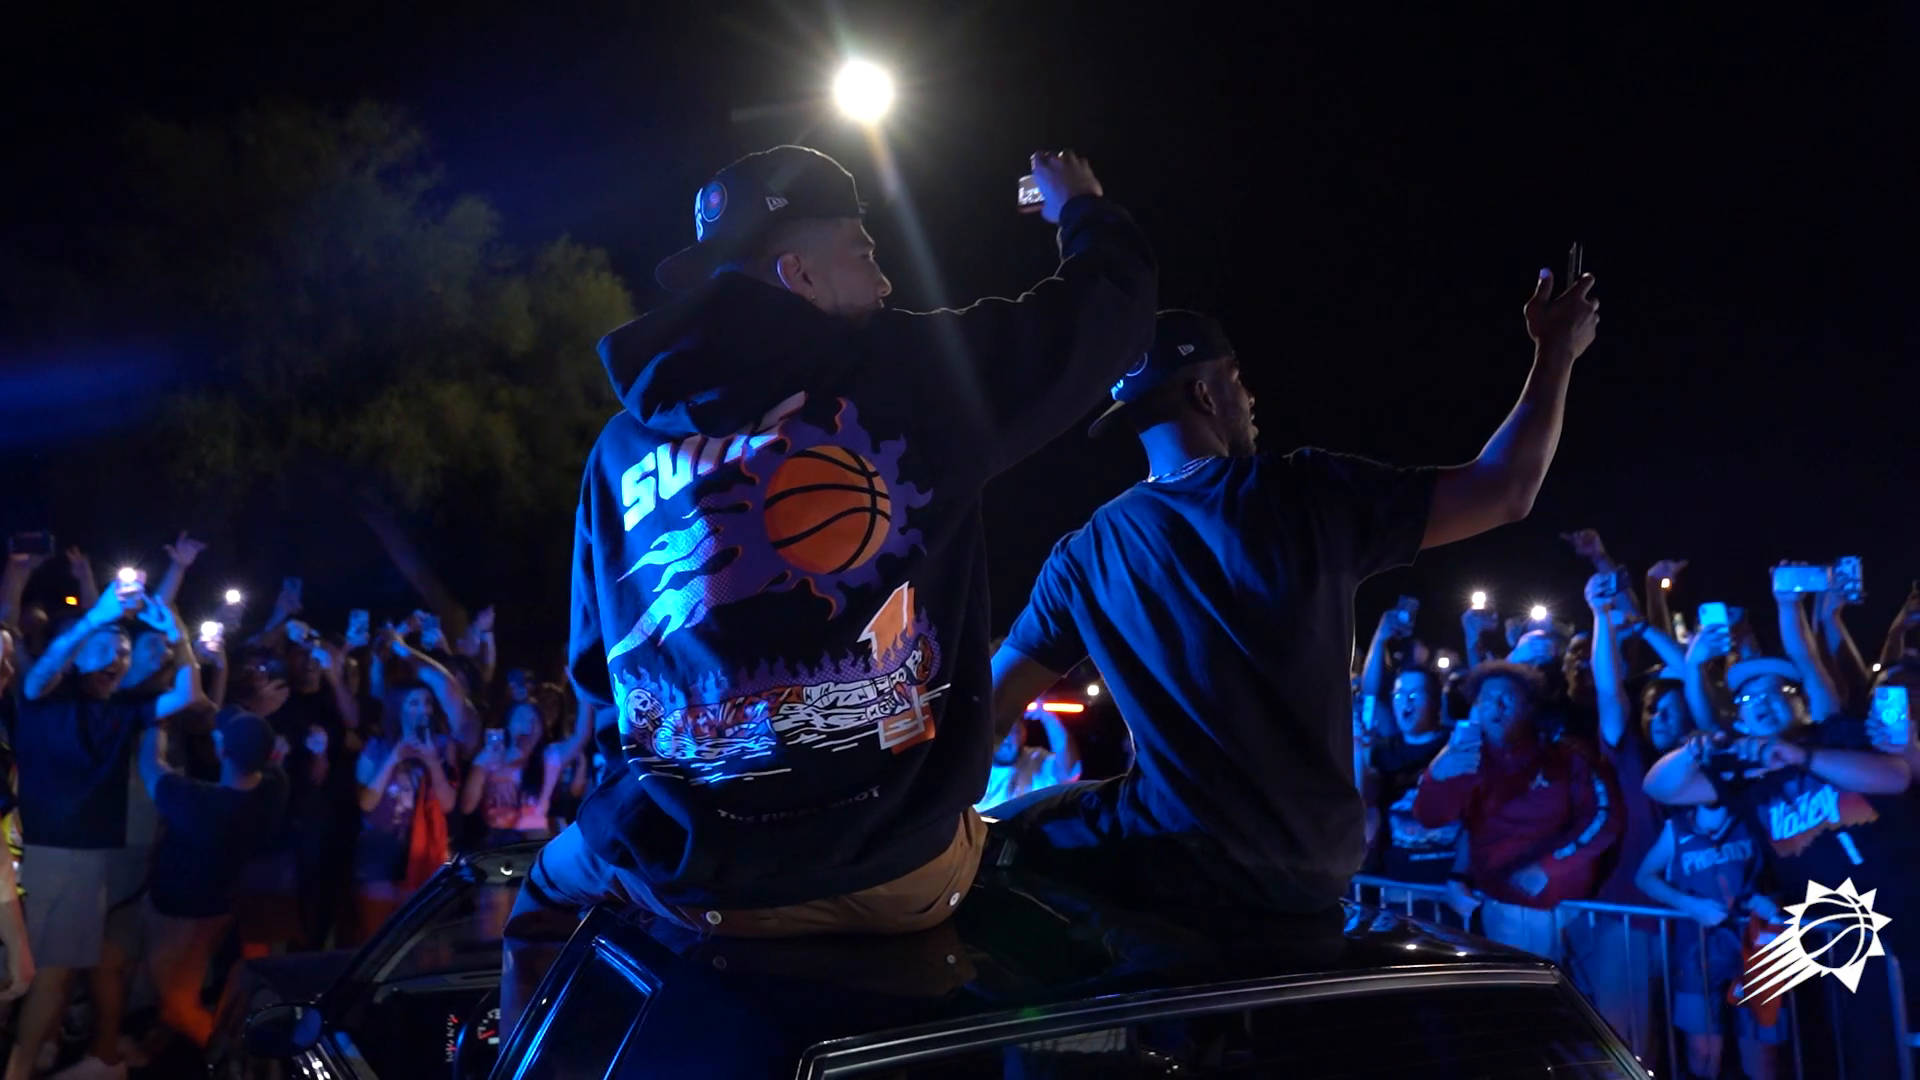 Western Conference Champions Greeted by Suns Fans at the Airport